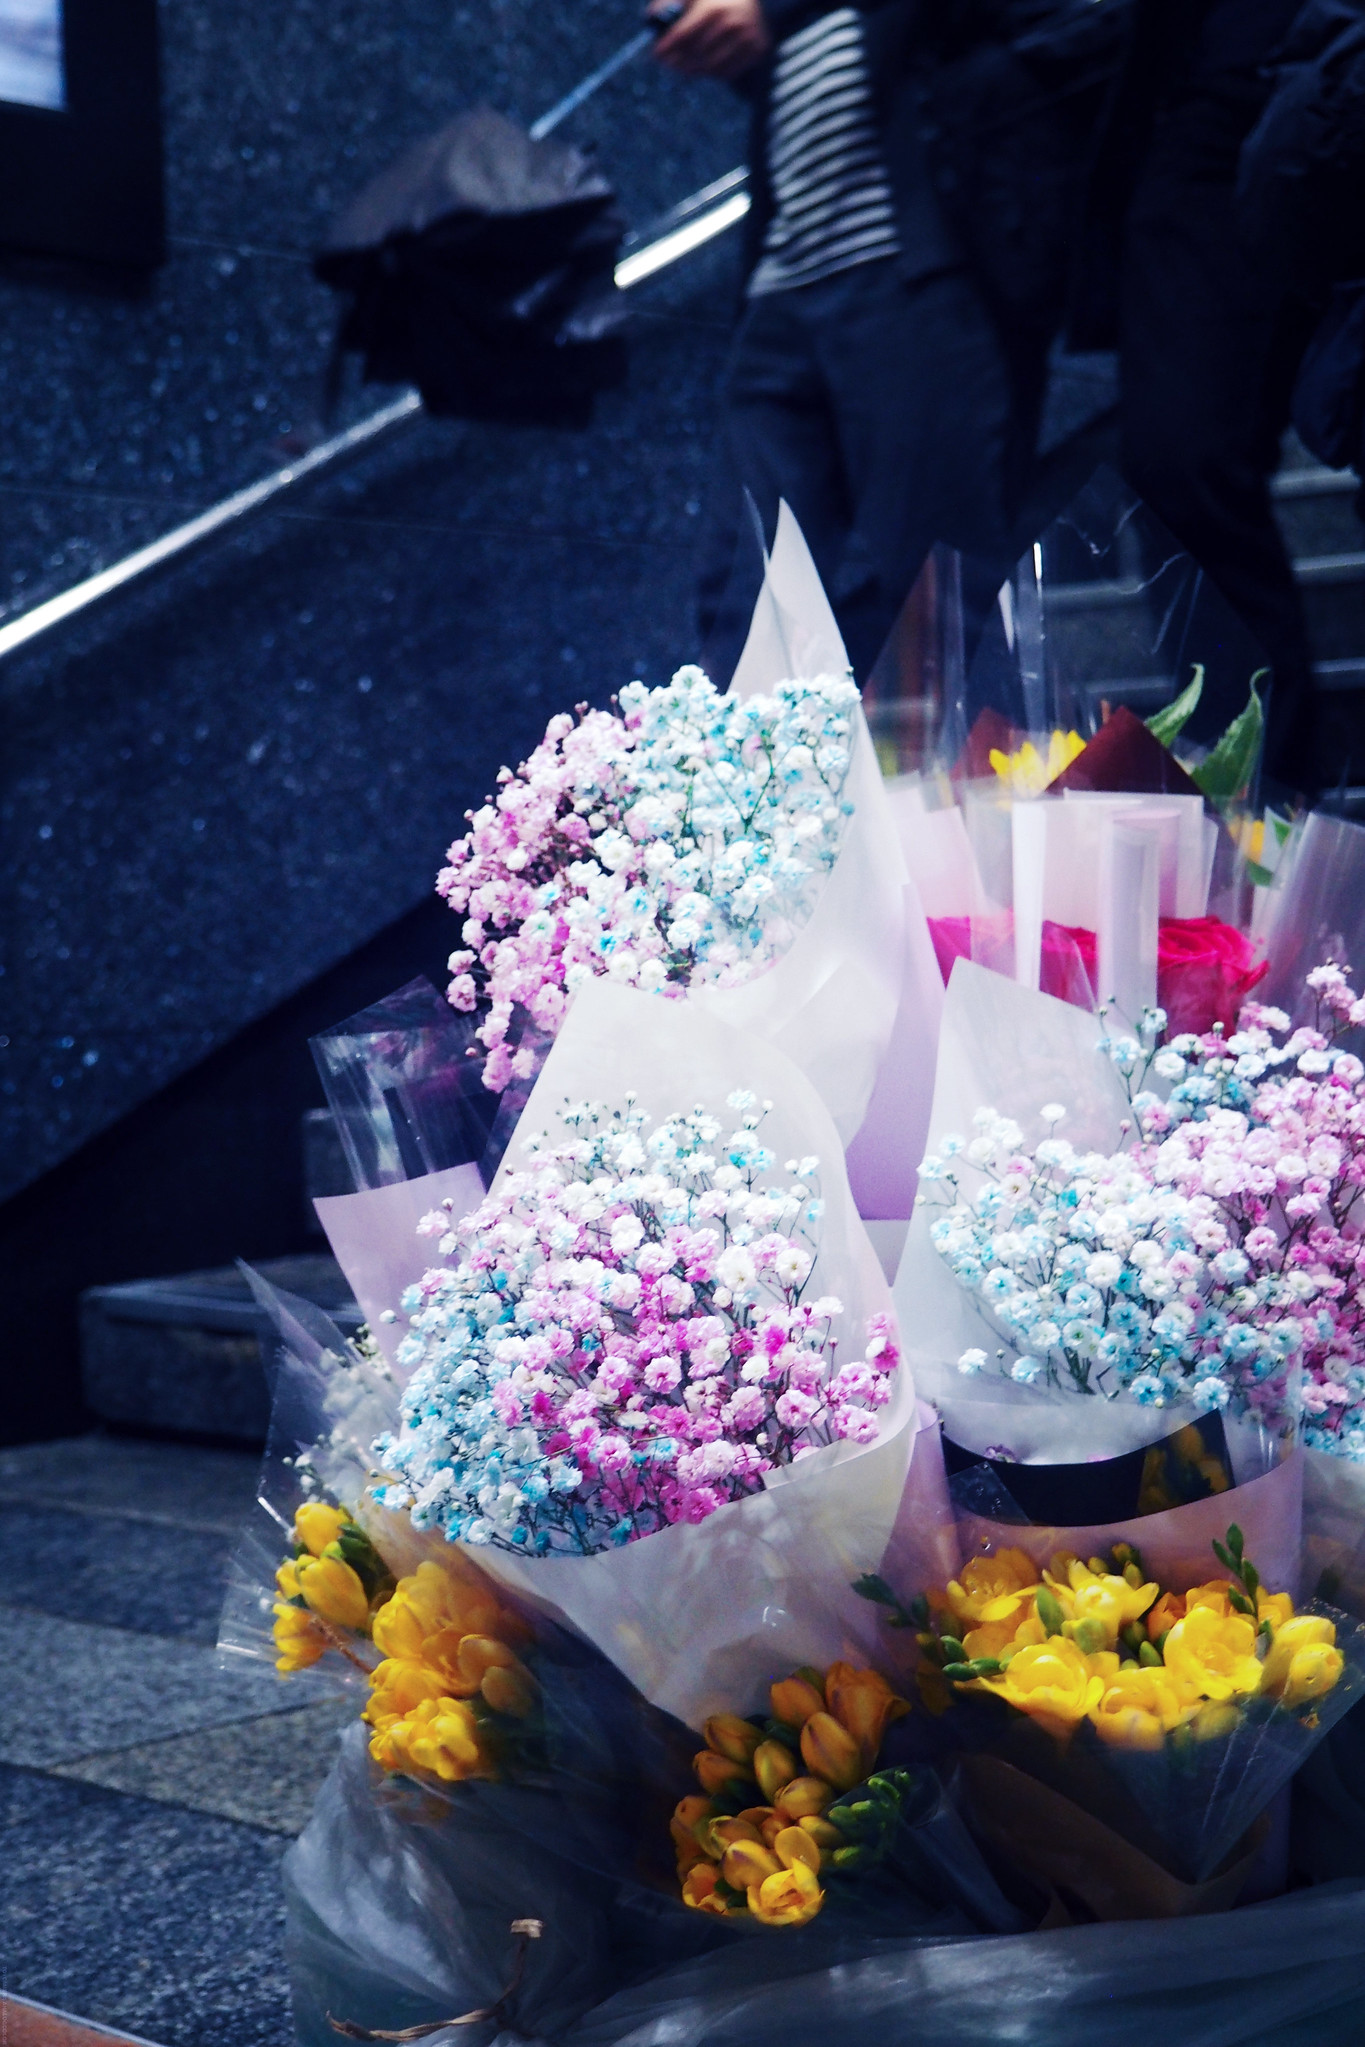 Lilac and Powder Pink Dried Flowers Seoul South Korea_effected